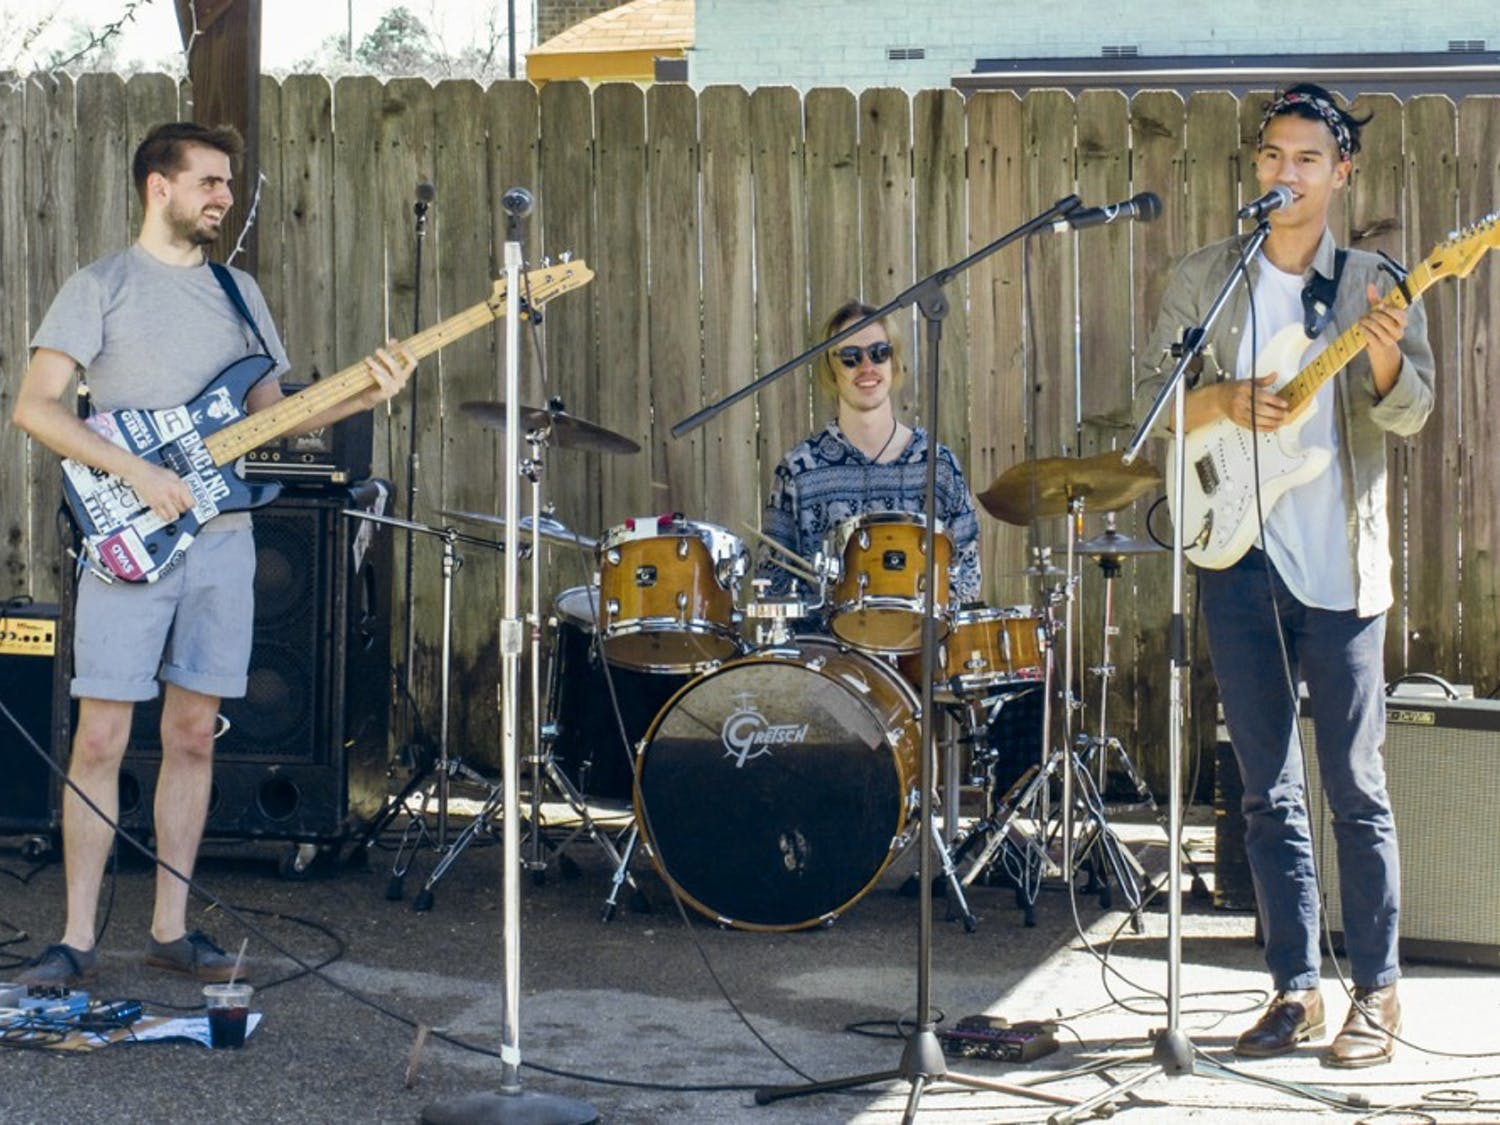 WUSC finished their fundraiser week with a large celebration of talentedlocal musicians at El Burrito.